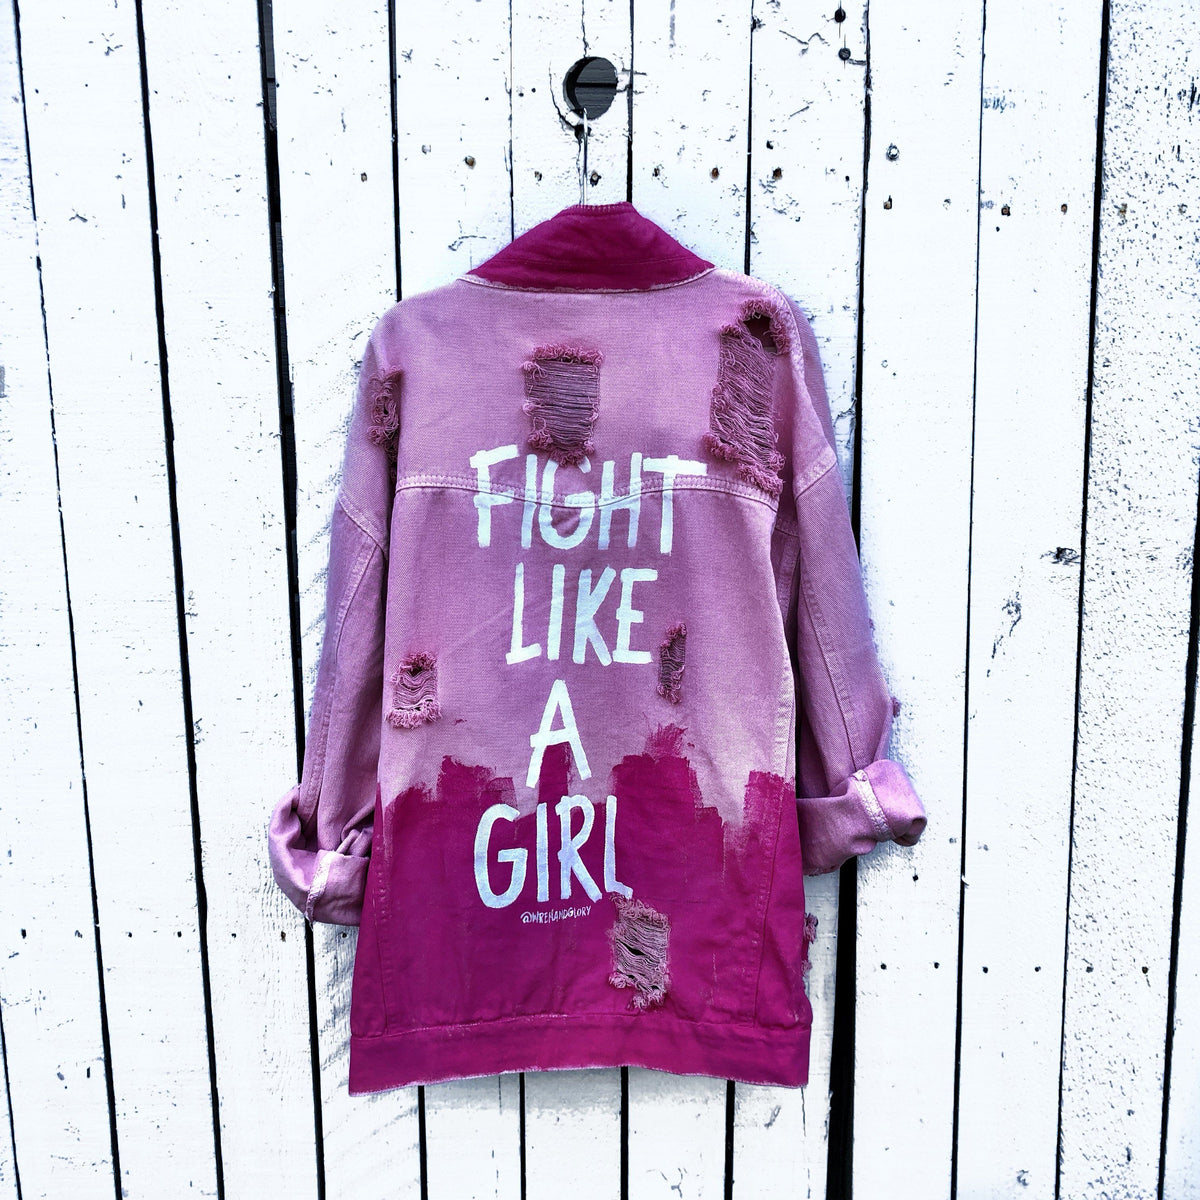 Pink /blush colored denim. Hot pink painted along the bottom half of the jacket, with FIGHT LIKE A GIRL painted in white on back. Small Breast Cancer Awareness ribbon painted on front upper pocket. Signed @wrenandglory.